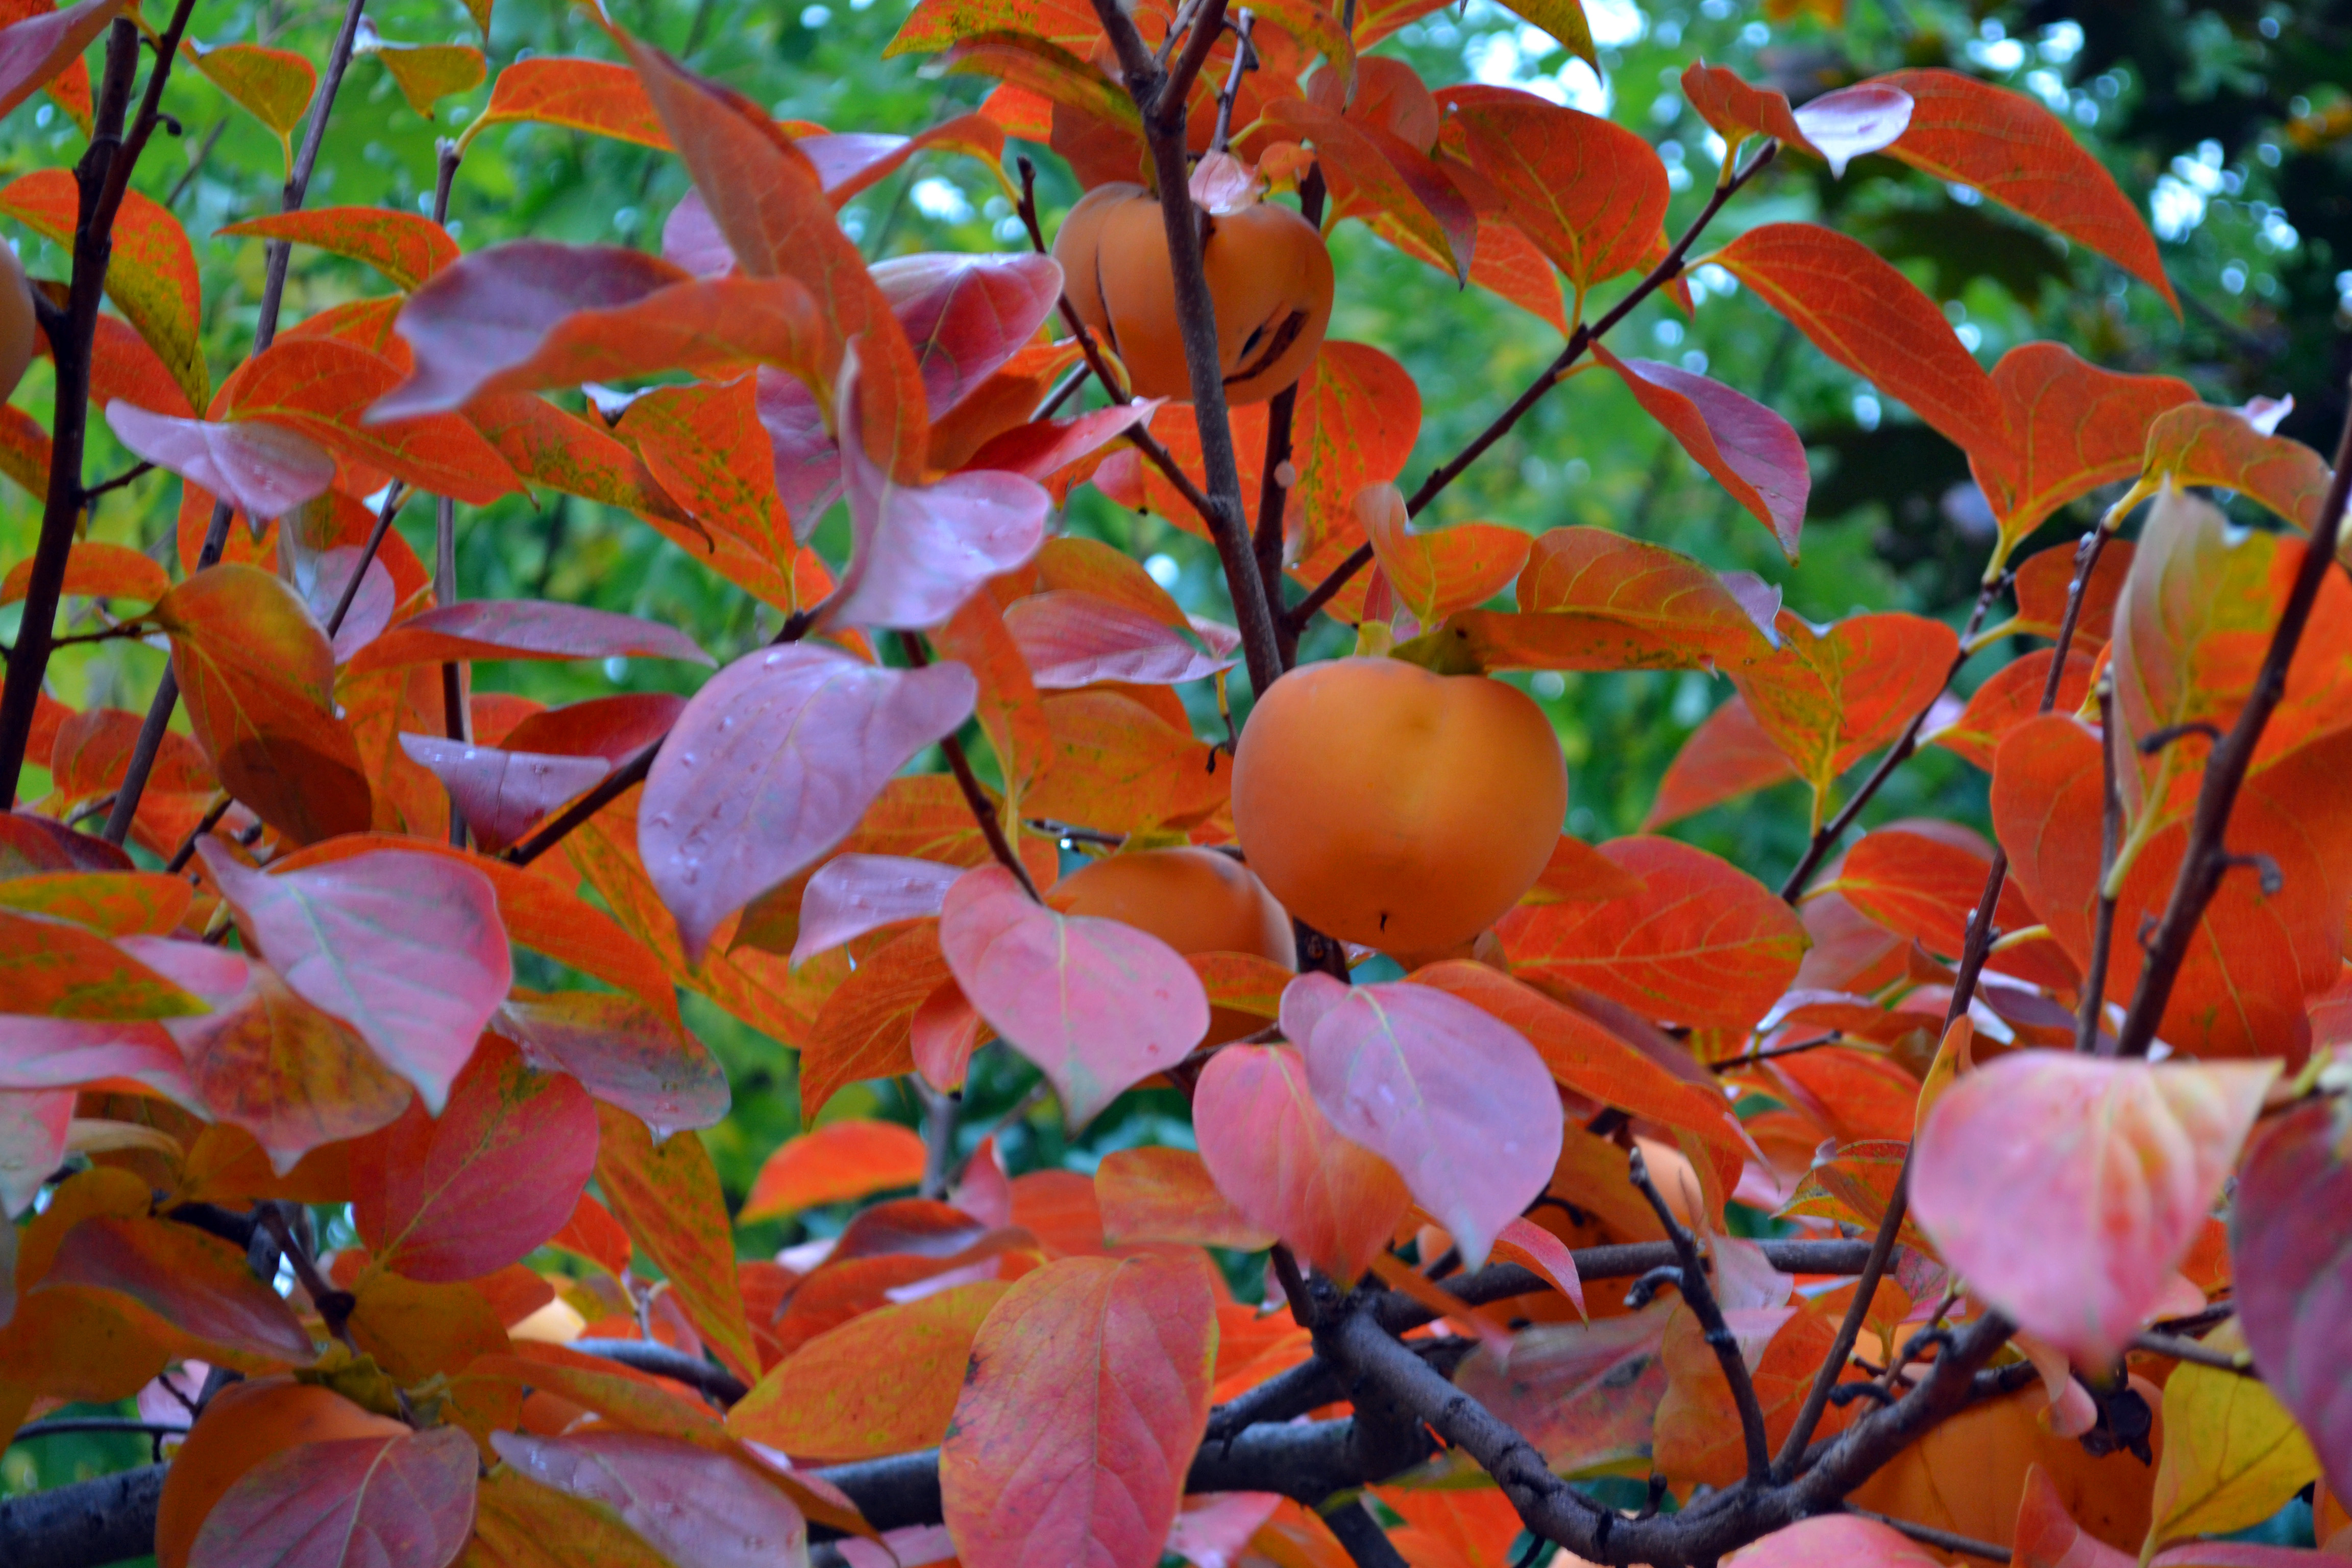 how to say persimmon in japanese